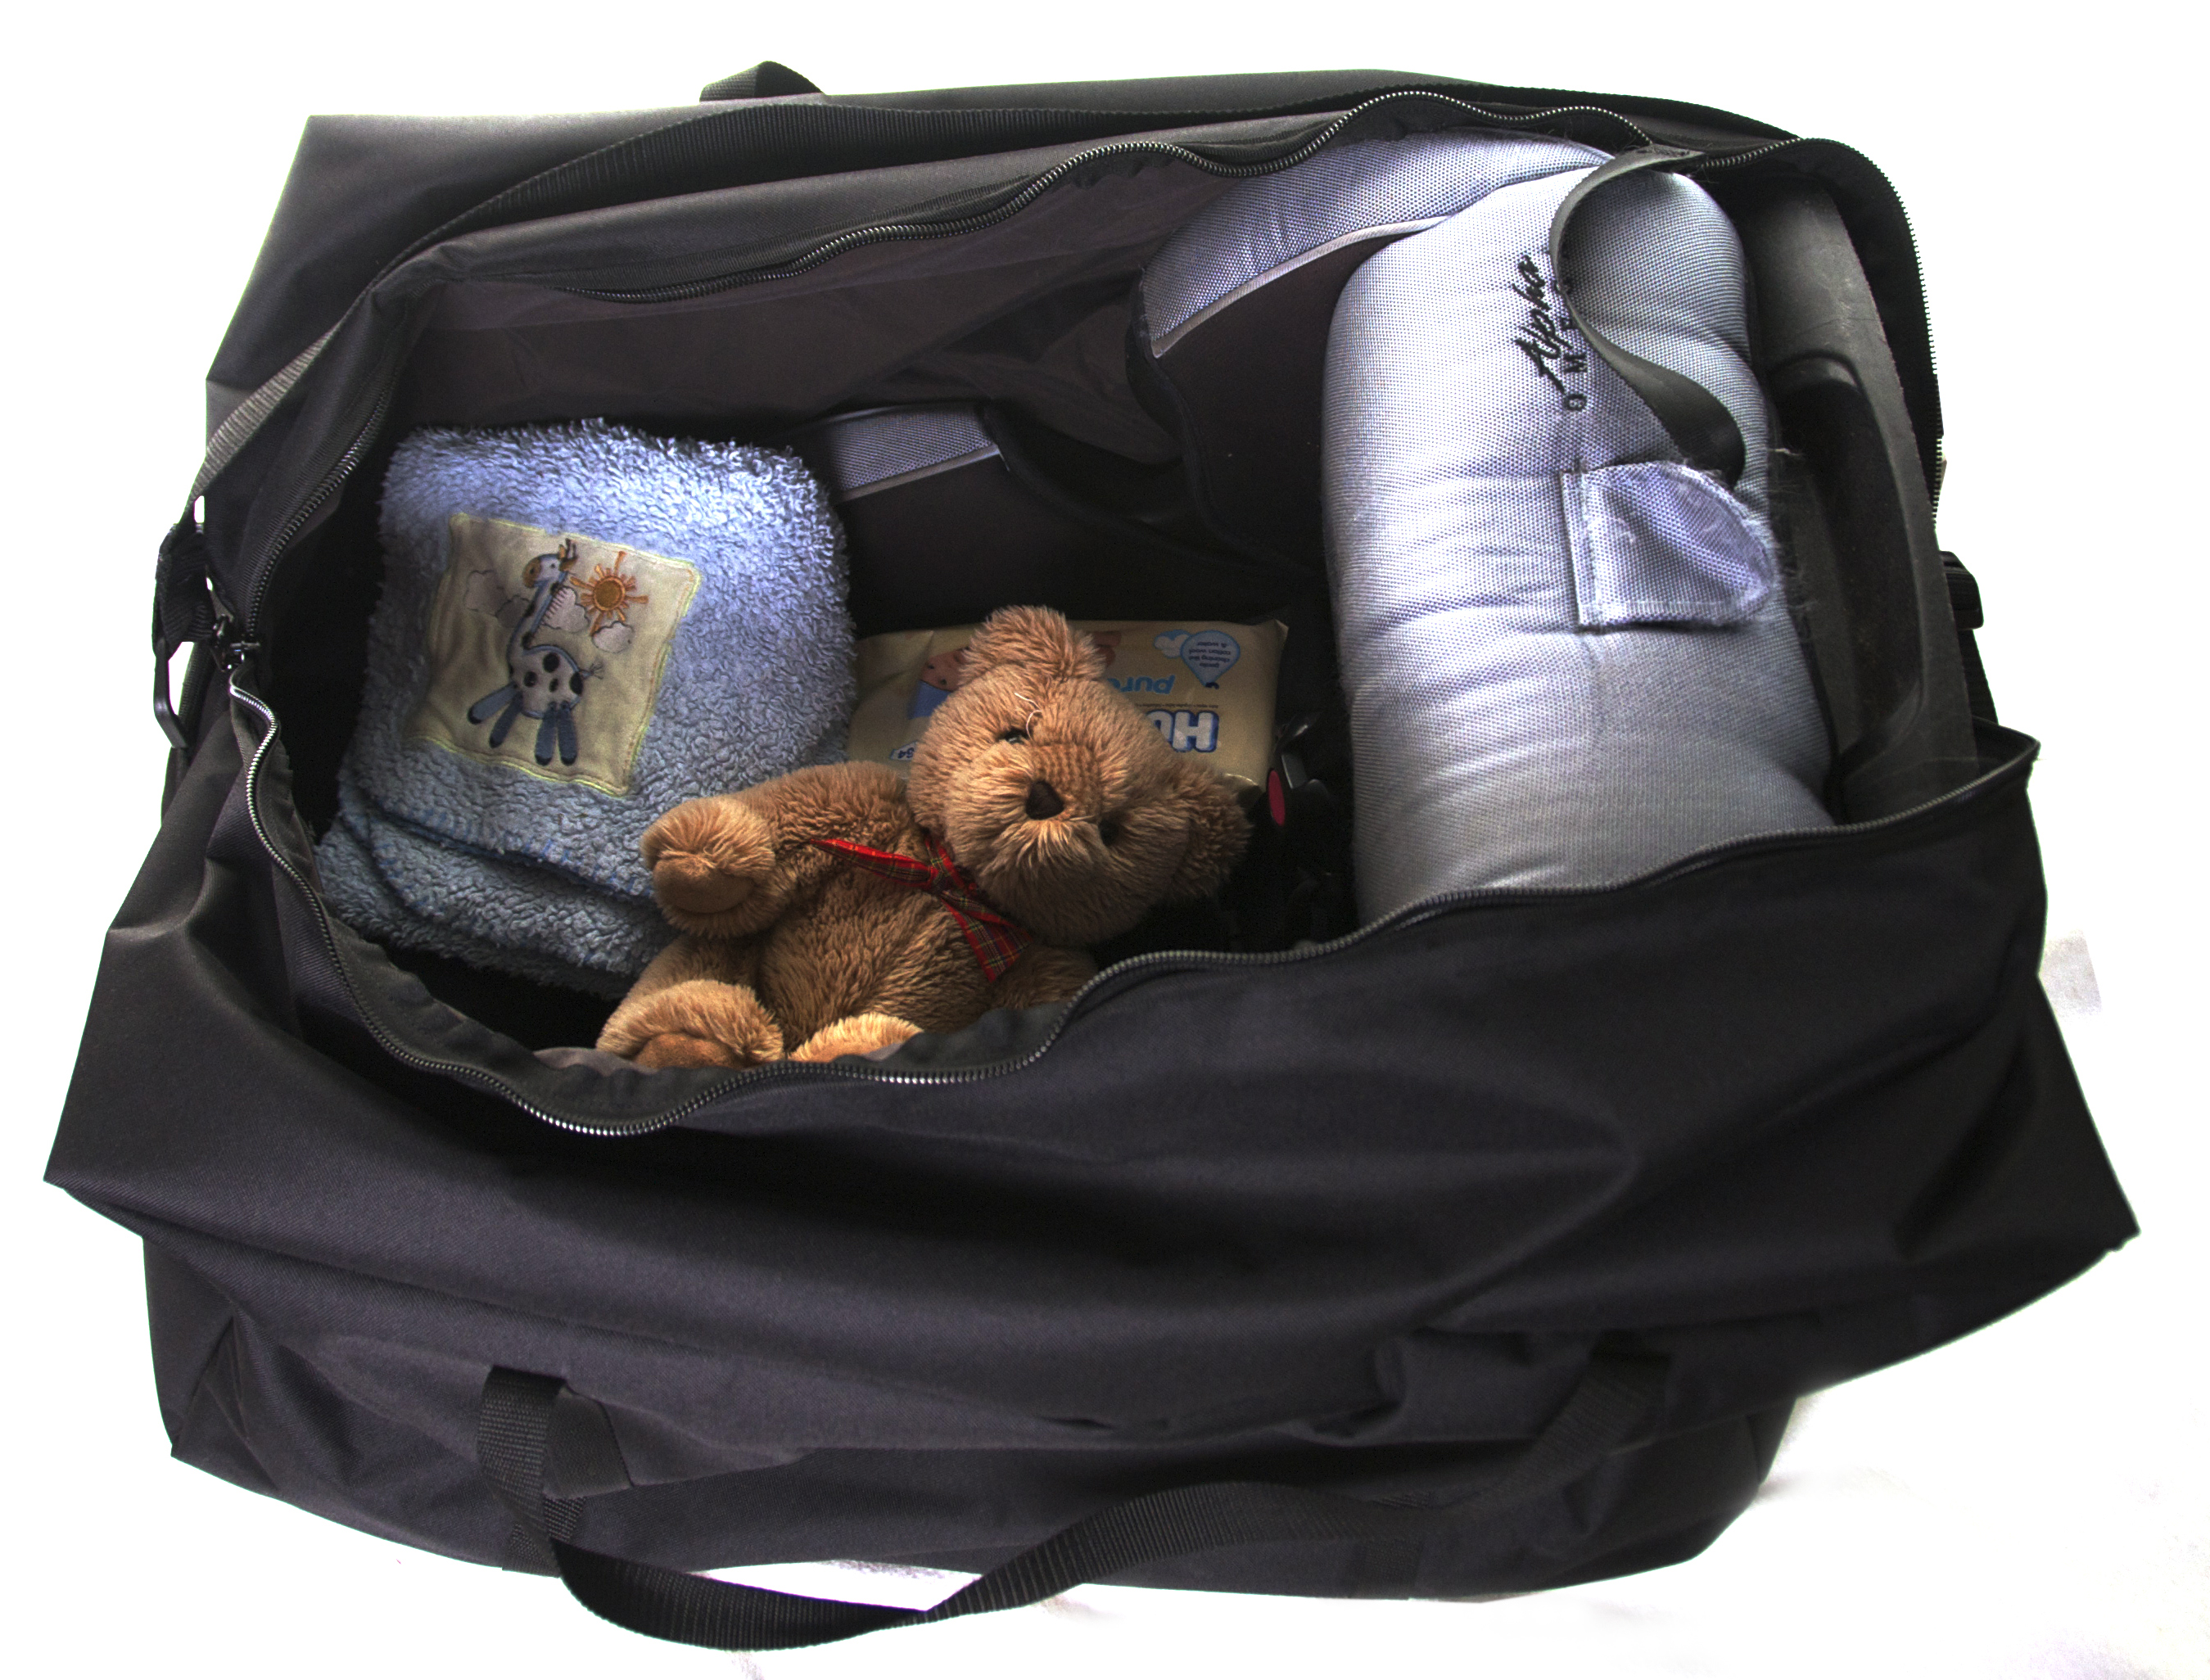 air travel with prams and carrycots twinsclub. Black Bedroom Furniture Sets. Home Design Ideas